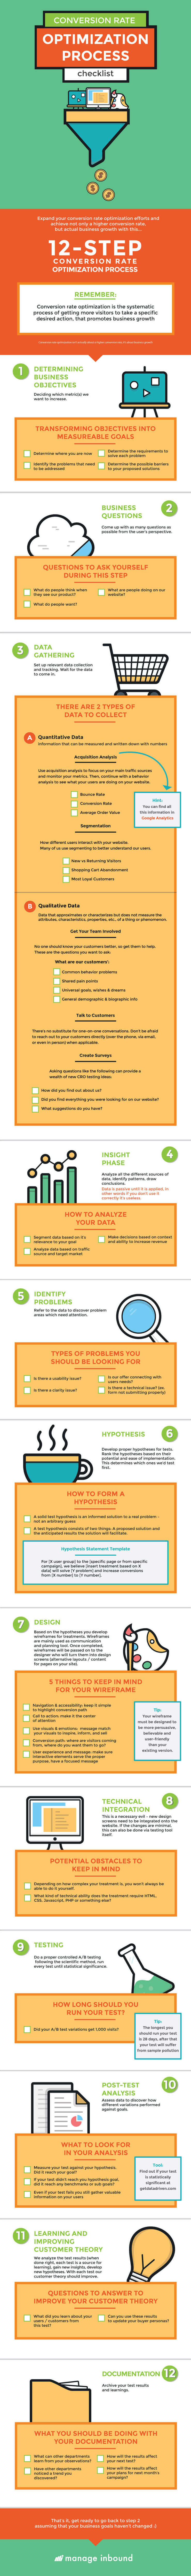 Conversion Rate Optimization Process Checklist [Infographic]